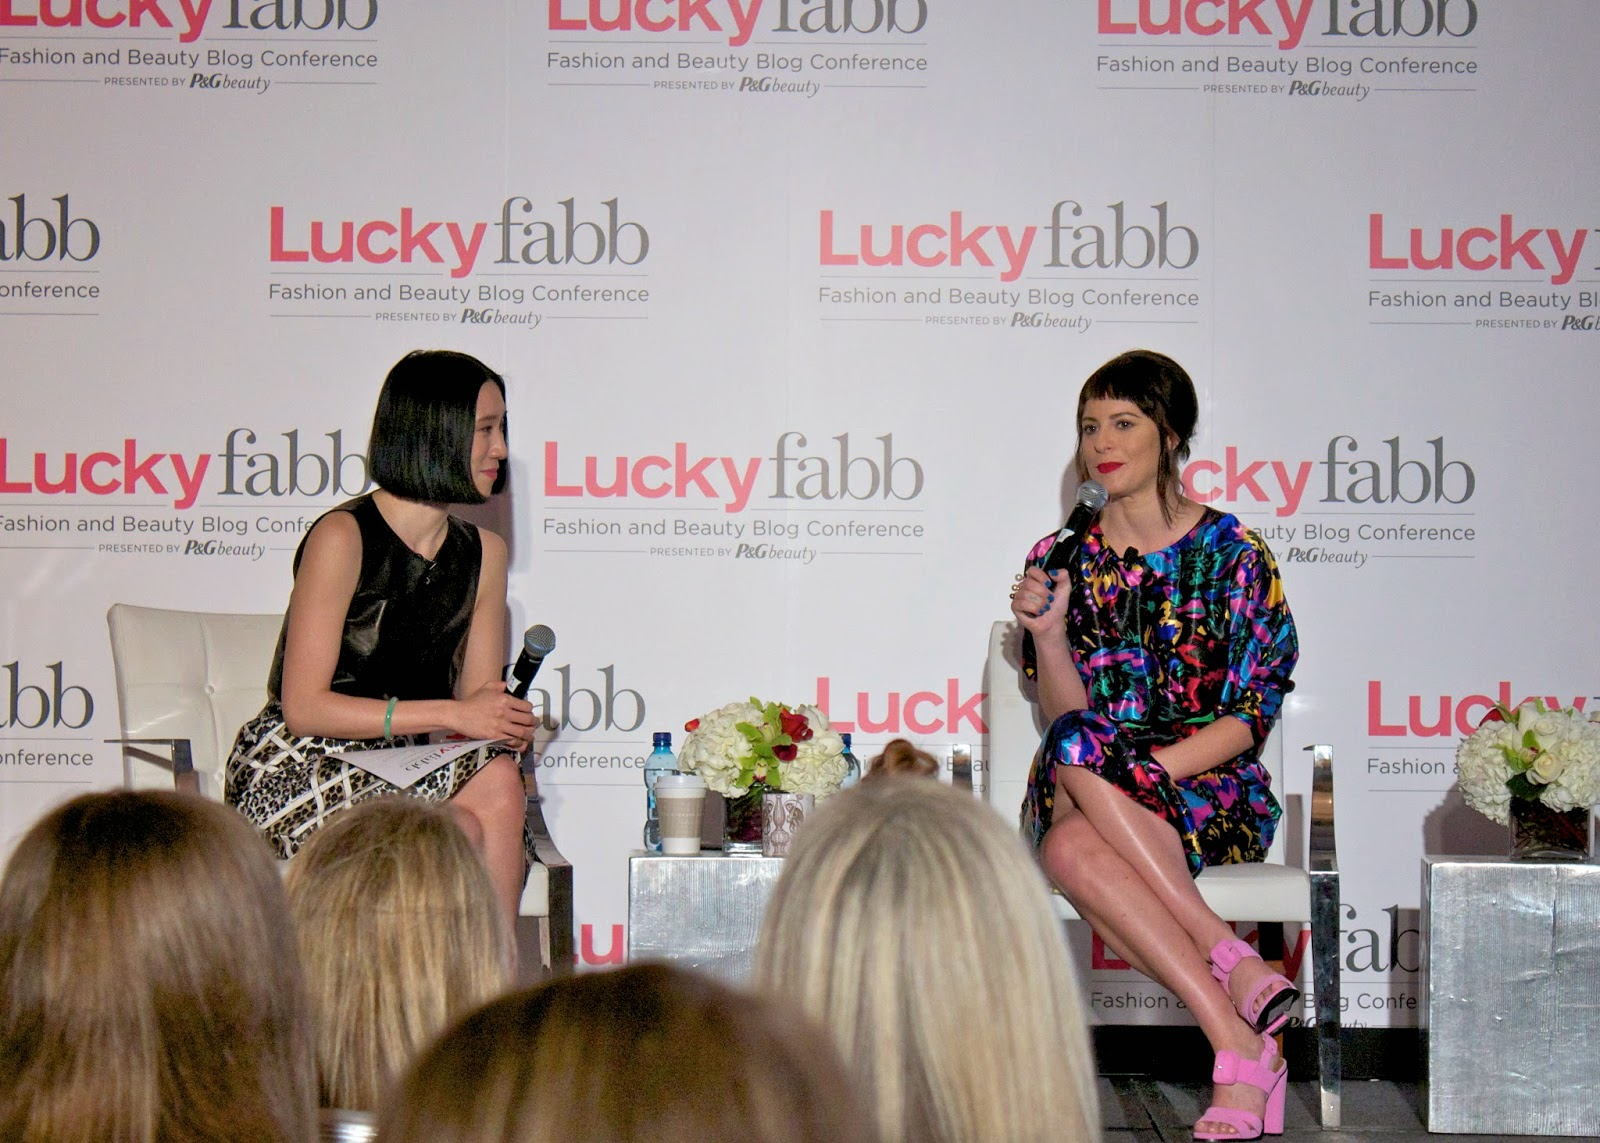 Sophia Amoruso at LuckyFabb, Sophia Amoruso Nasty Gal pink shoes